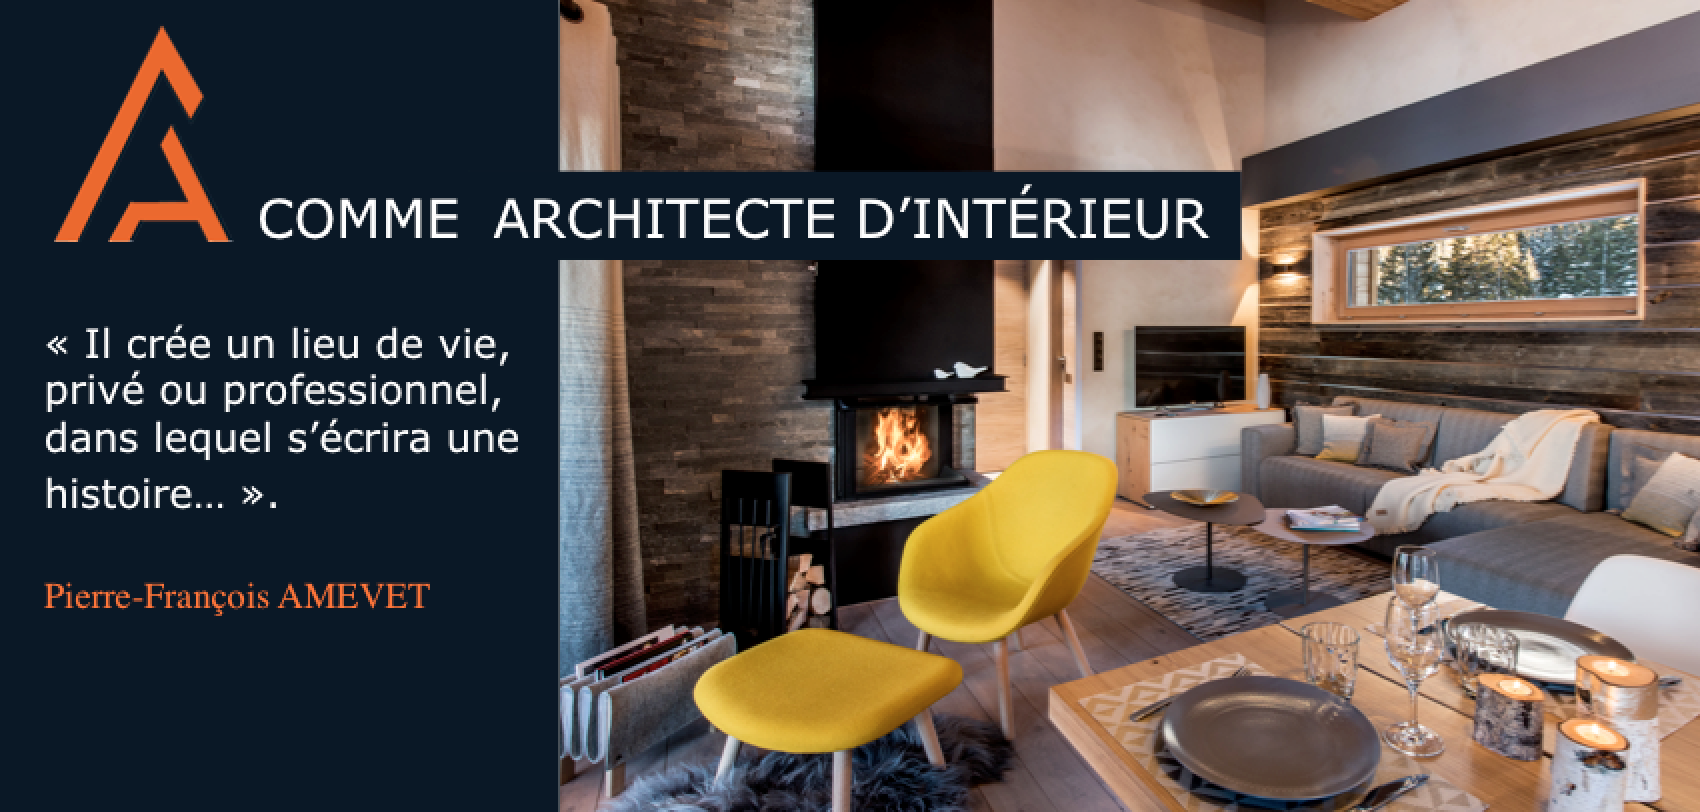 amevet architecte interieur savoie rhone alpes chalet espace de vente. Black Bedroom Furniture Sets. Home Design Ideas